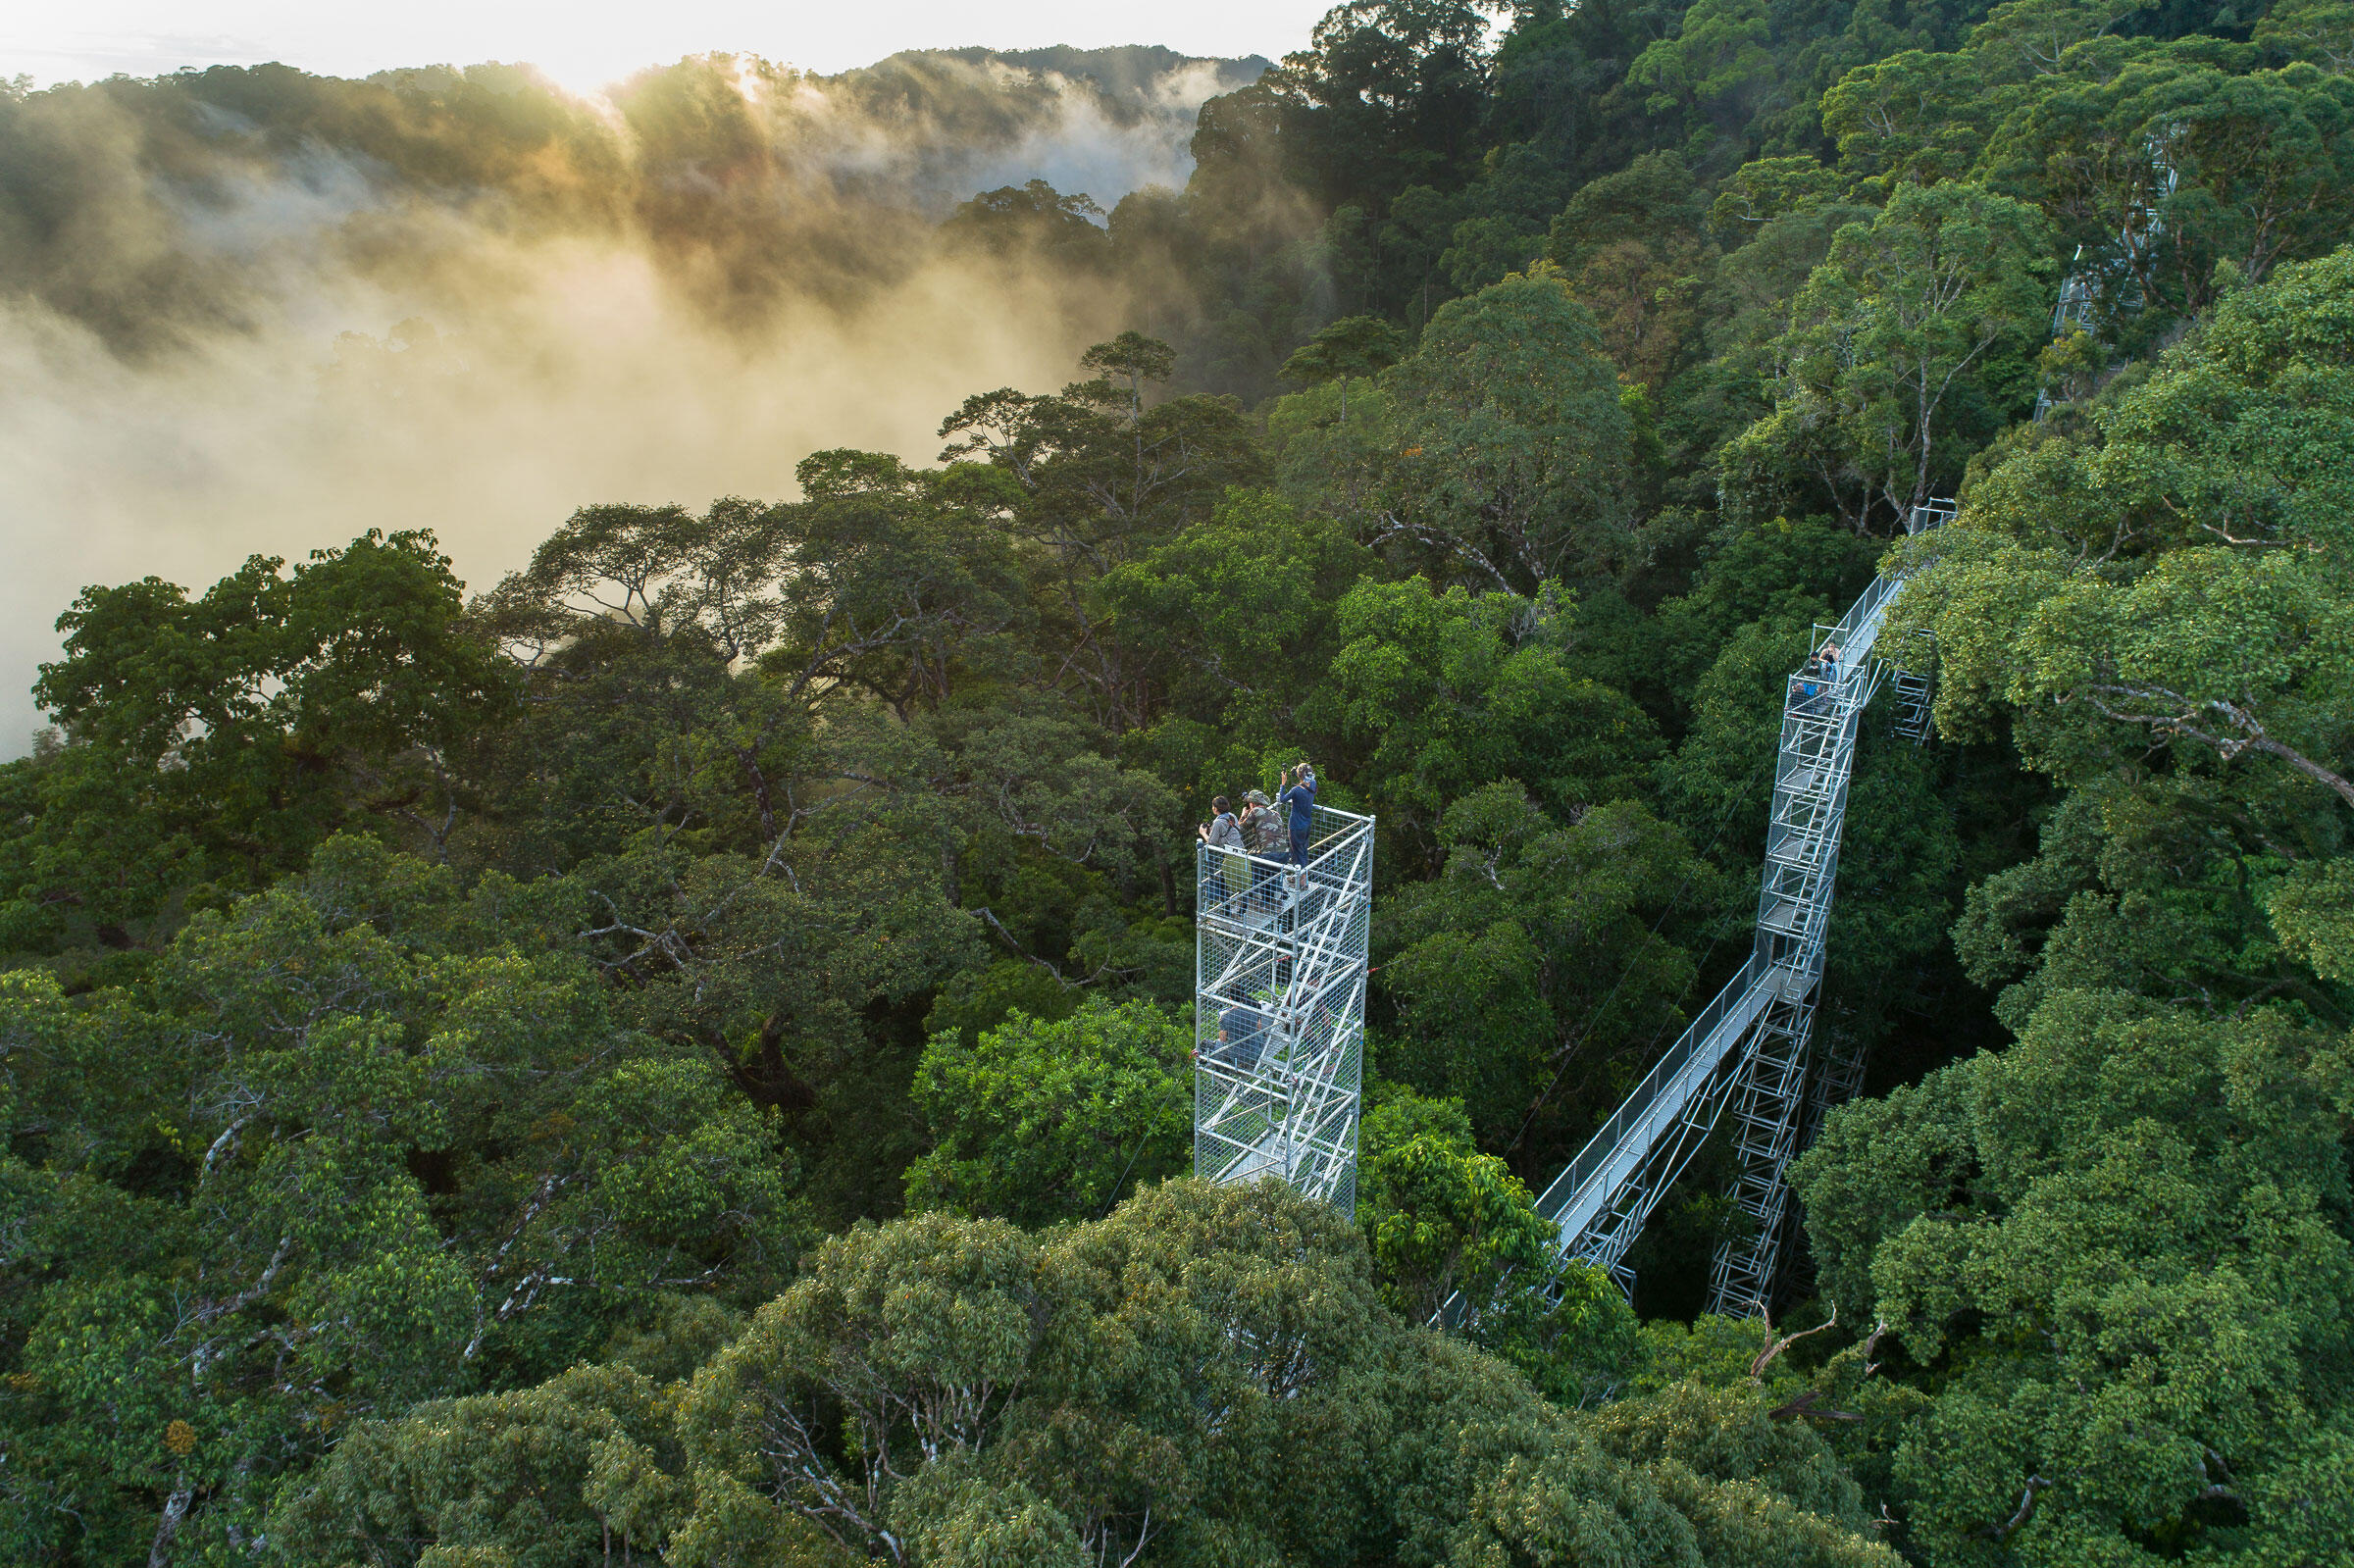 Brunei's Belalong Canopy Walkway offers unhindered views of the secretive denizens of the rainforest canopy. It's here, among the ripe mistletoe berries, that researchers are hoping to catch and analyze their first Spectacled Flowerpecker. Chien C. Lee